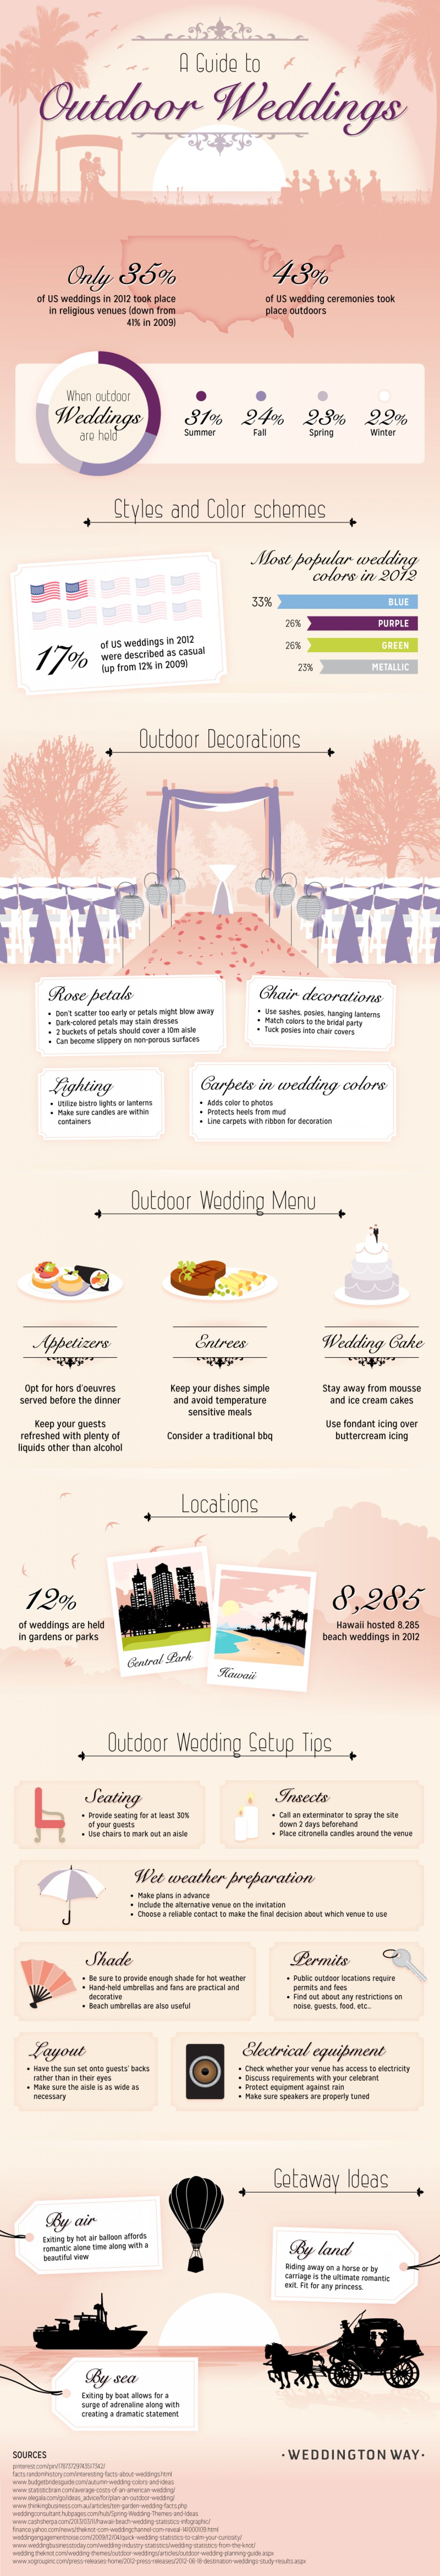 Life-Hacks And Advice For Outdoor Weddings